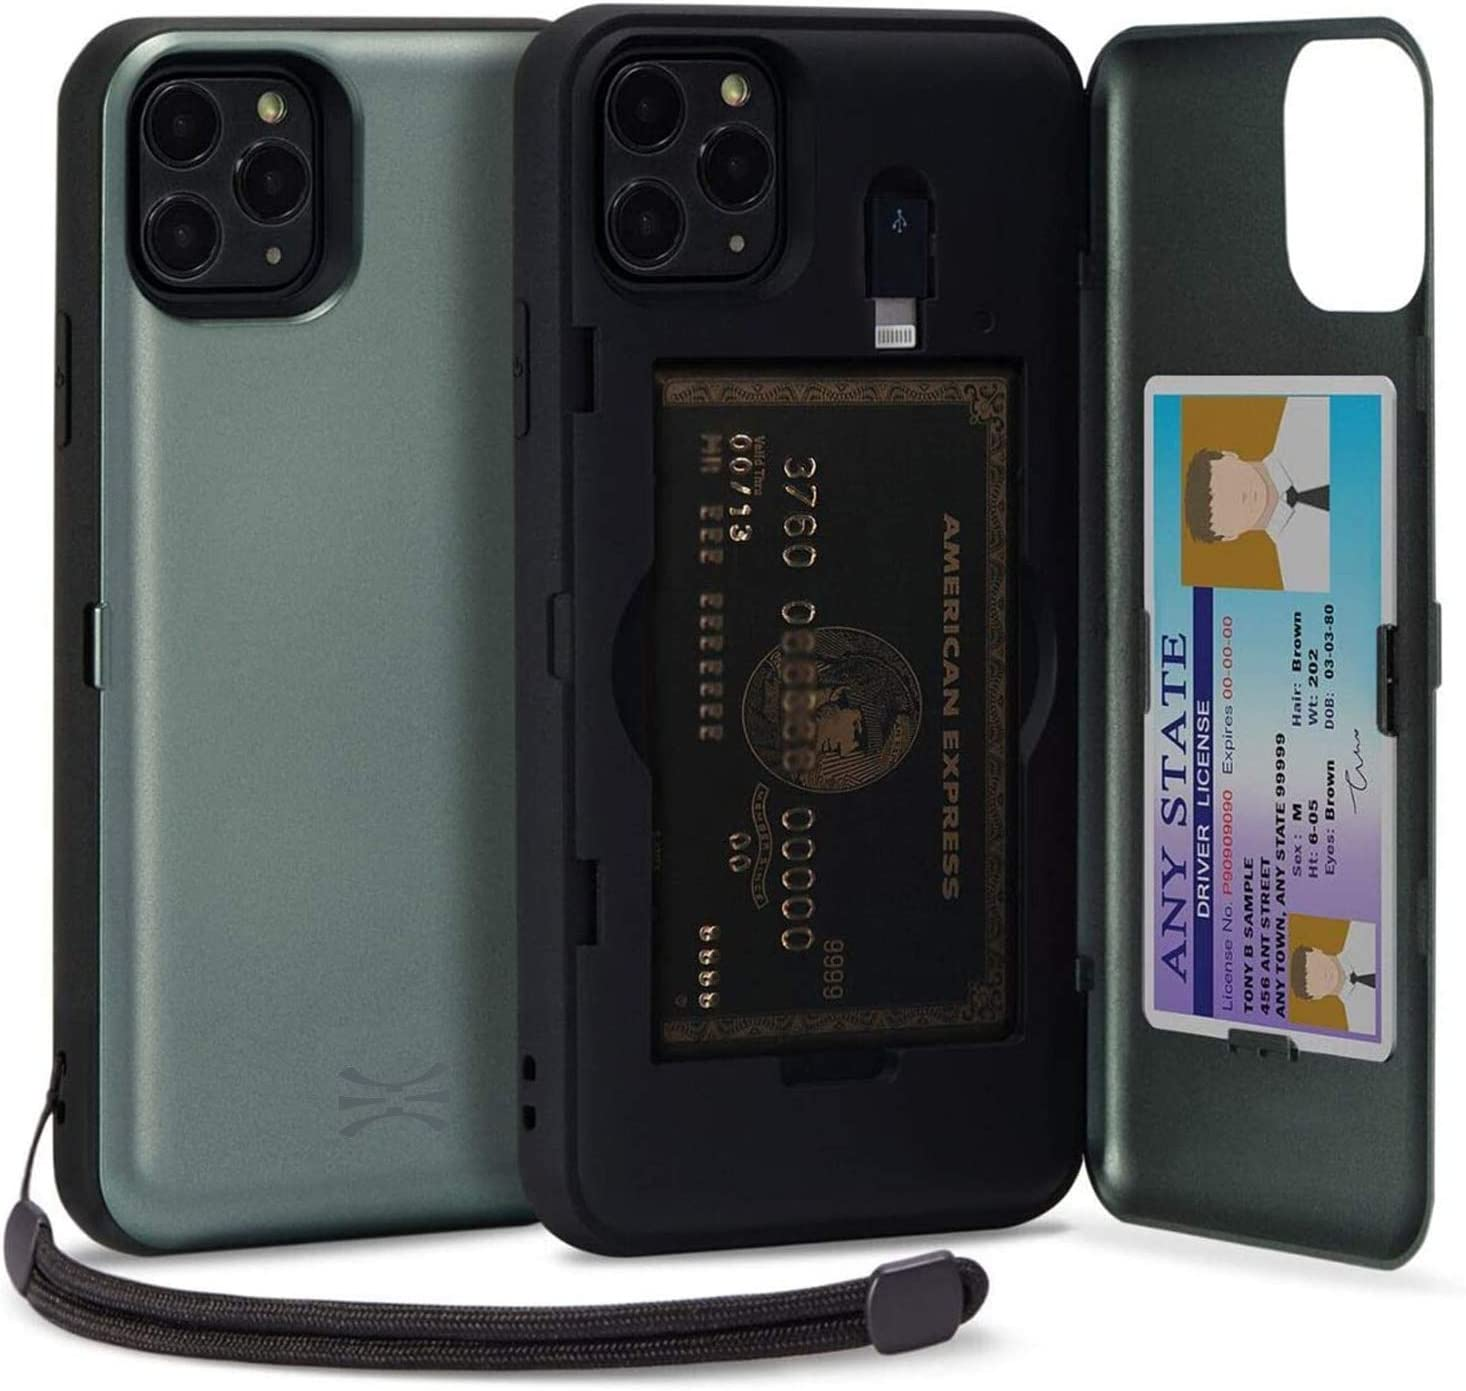 TORU CX PRO Compatible with iPhone 11 Pro Case - Protective Dual Layer Wallet with Hidden Card Holder + ID Card Slot Hard Cover, Strap, Mirror & Lightning Adapter - Midnight Green